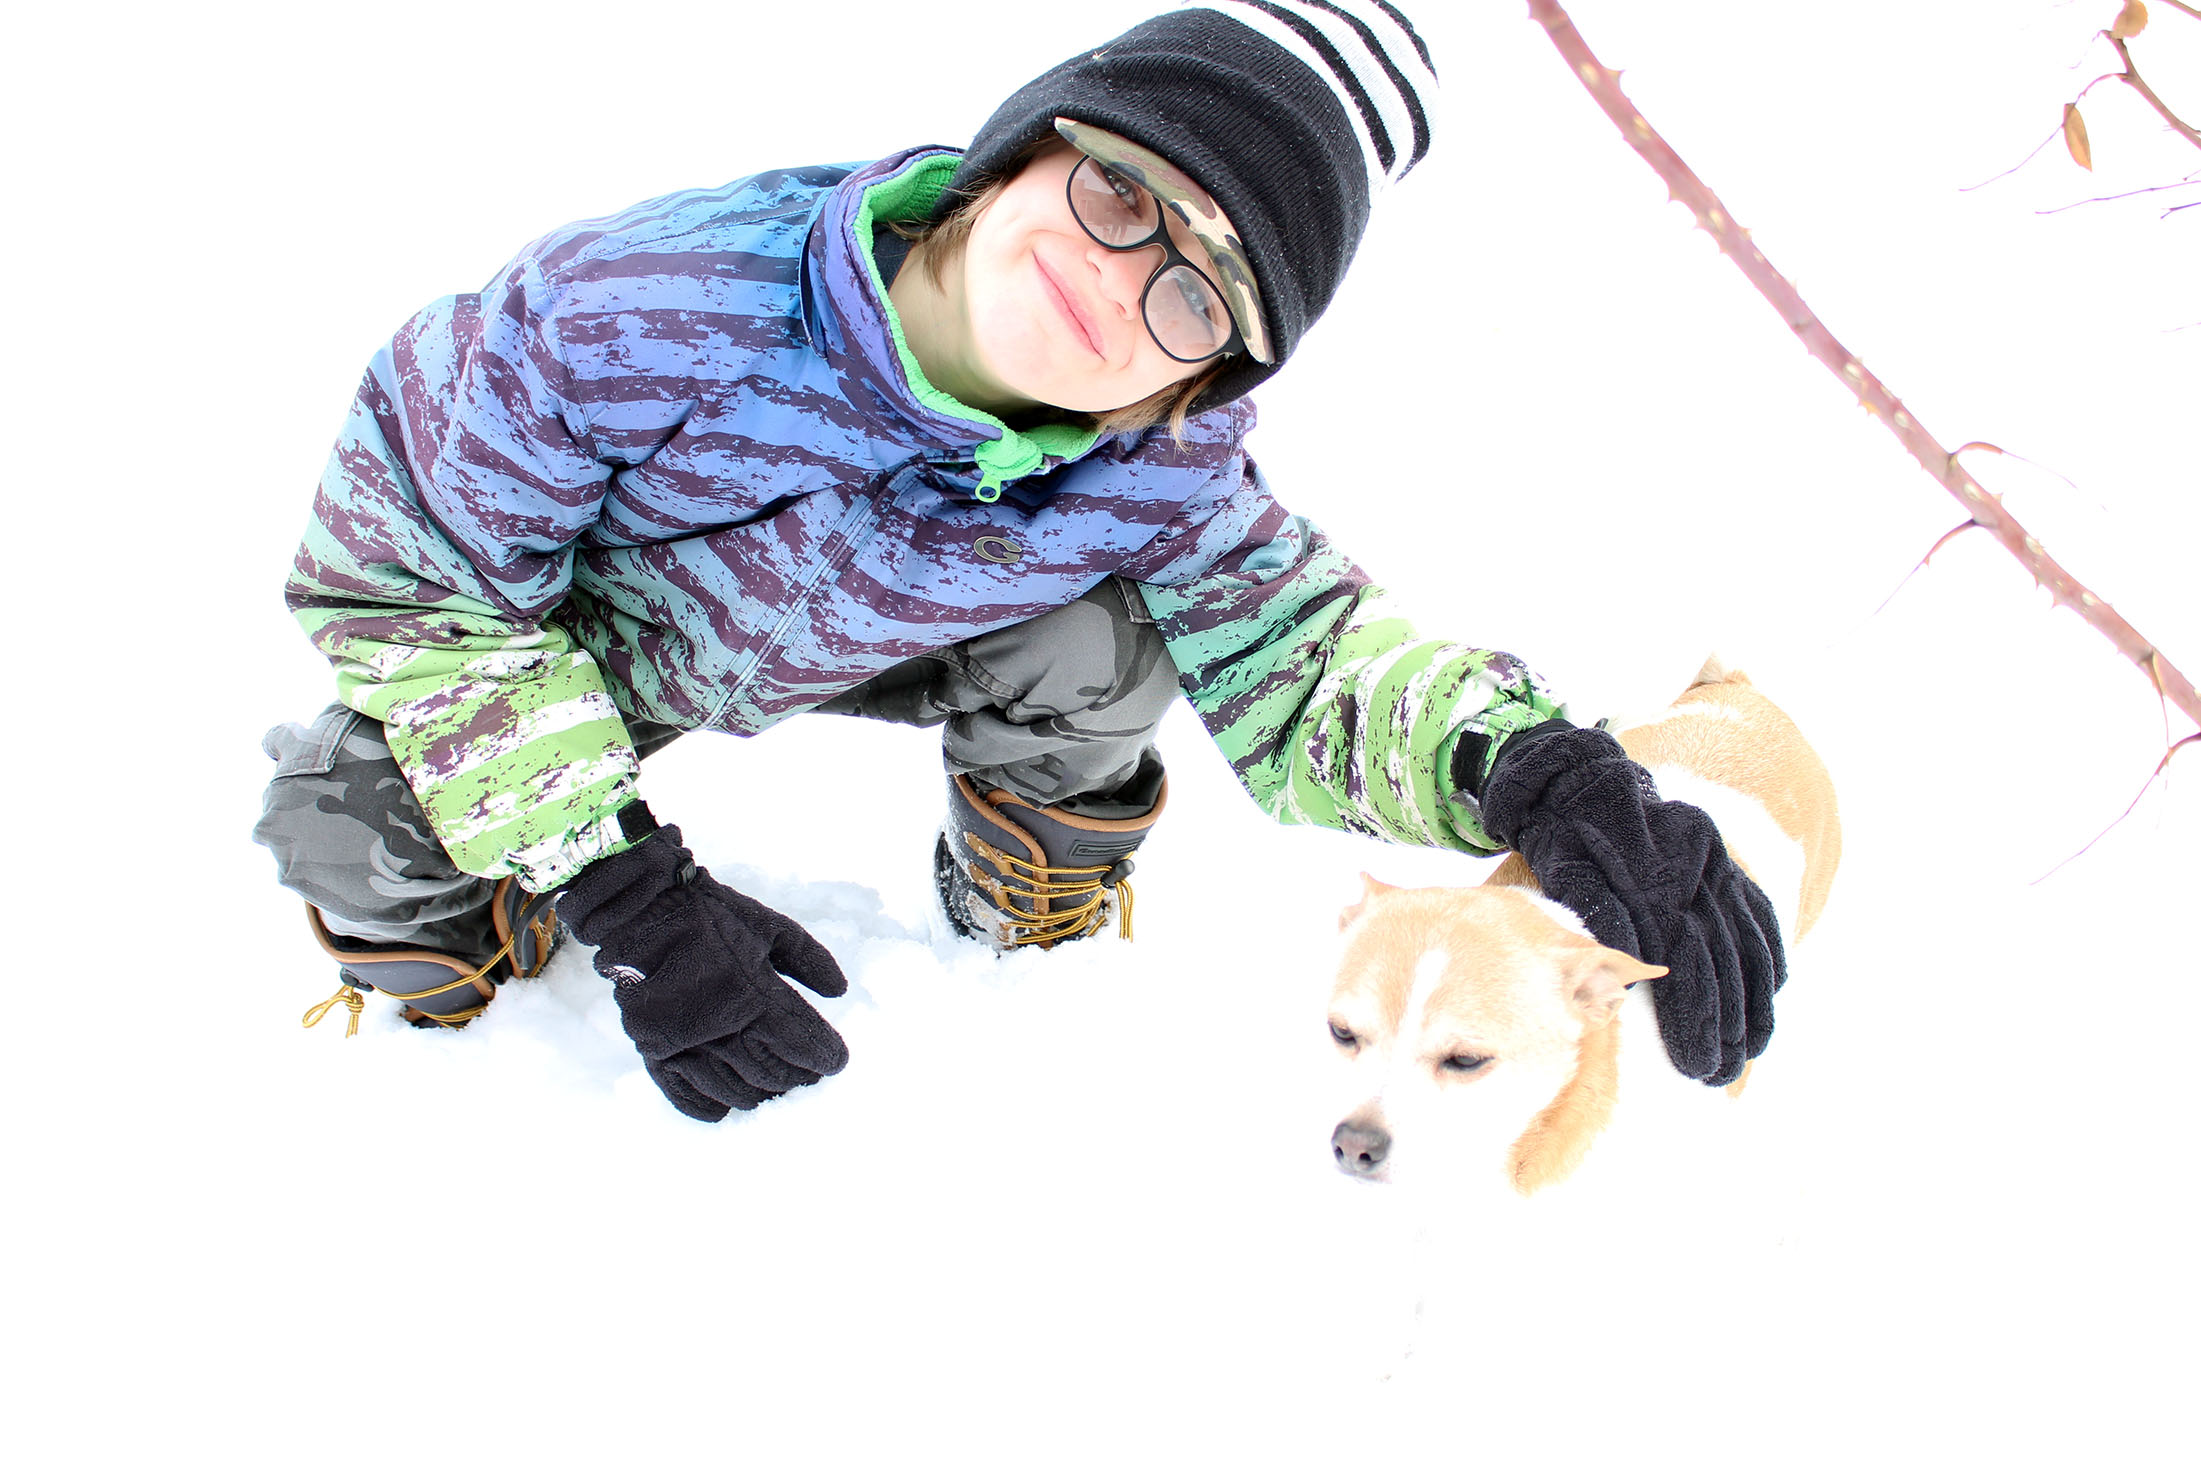 Tips for Having Dogs Outside in Extreme Cold Winter Temps